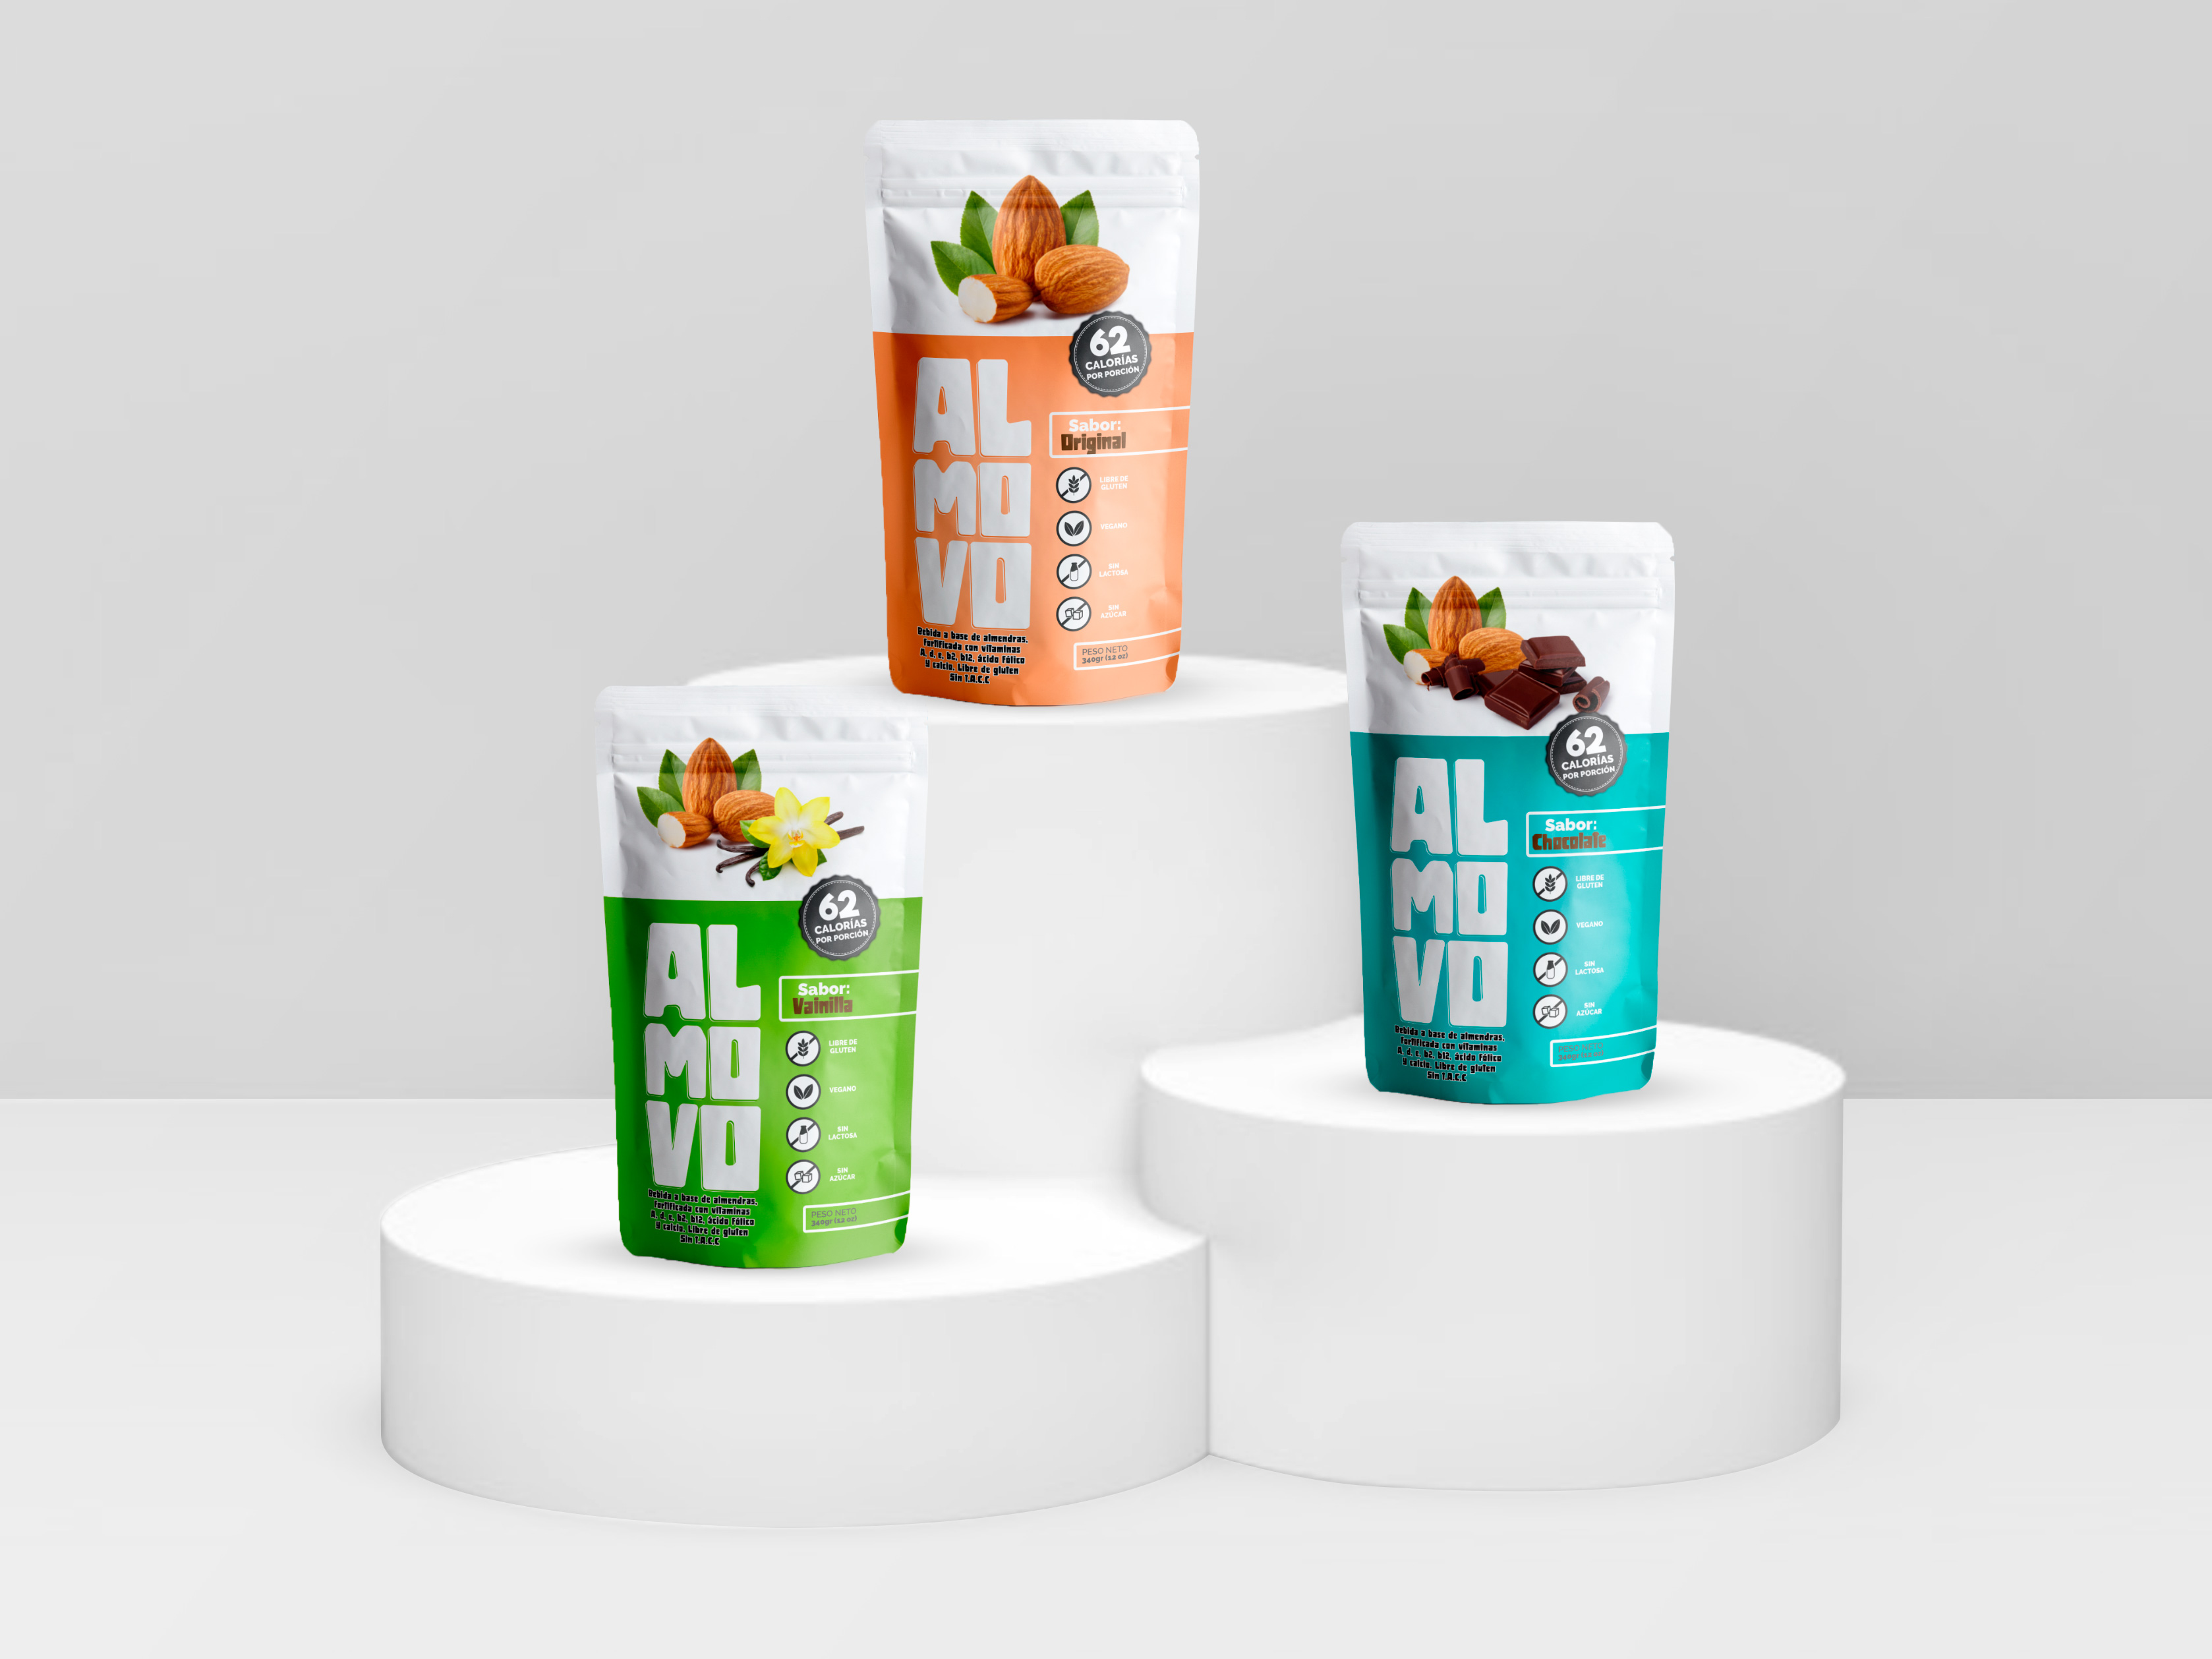 ALMOVO Packaging design for almond powder drinks – Colombia